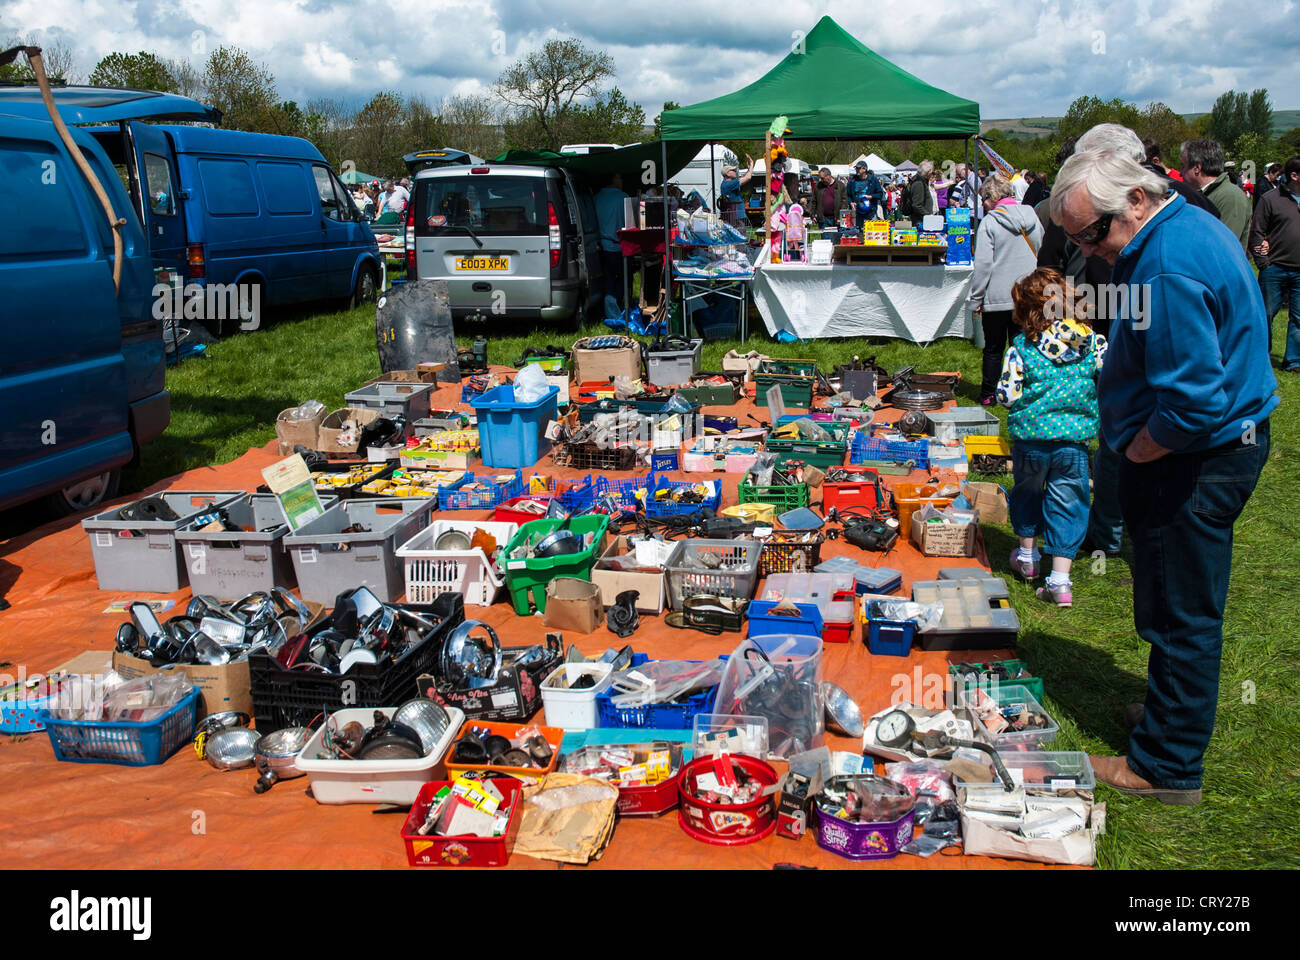 Car show market trader stall with buyers looking at merchandise ...